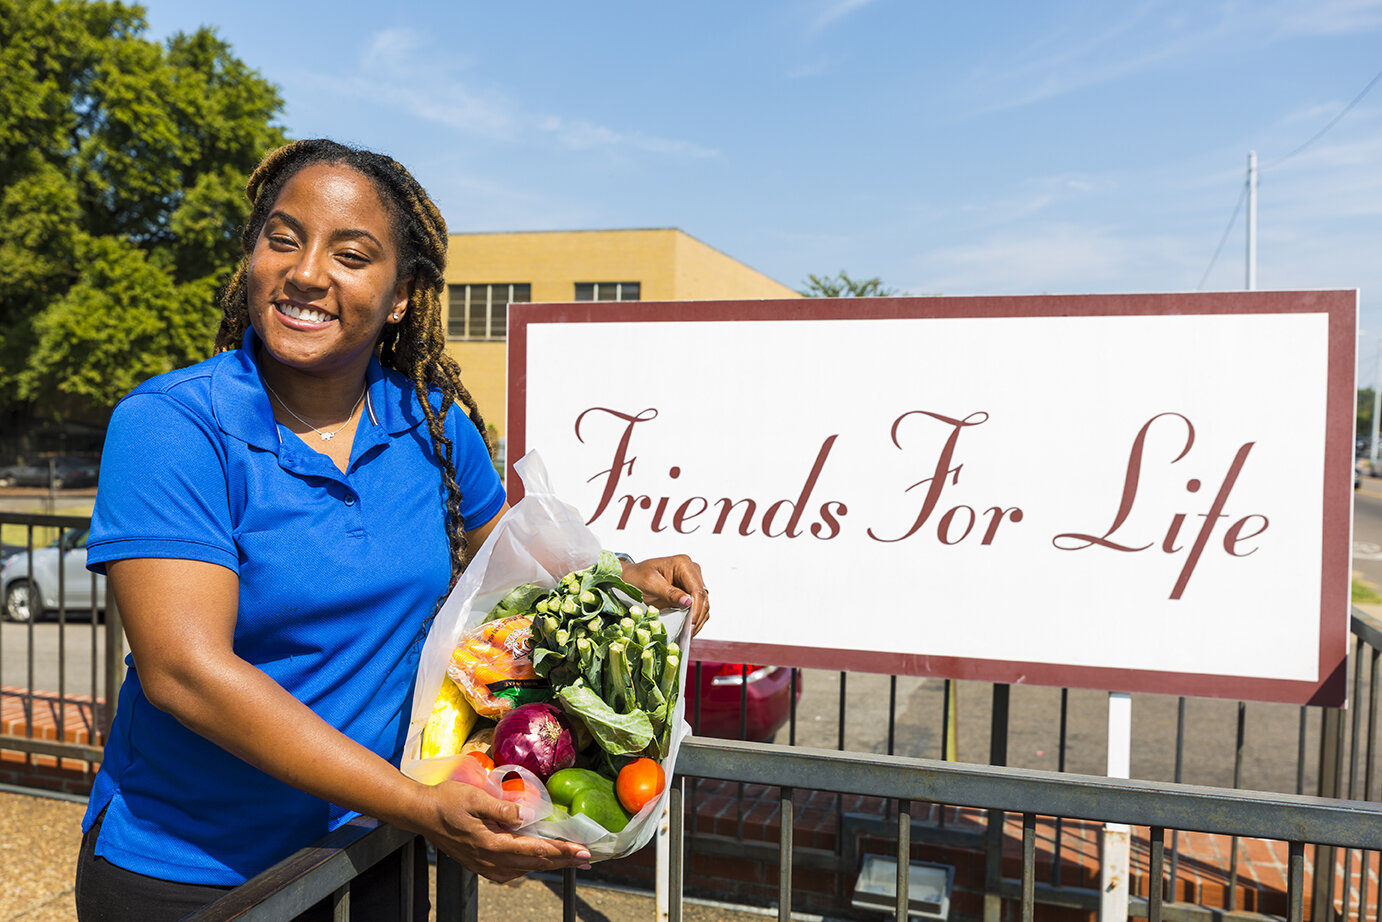 Cymone Merritt of Friends for Life at the Food Pantry